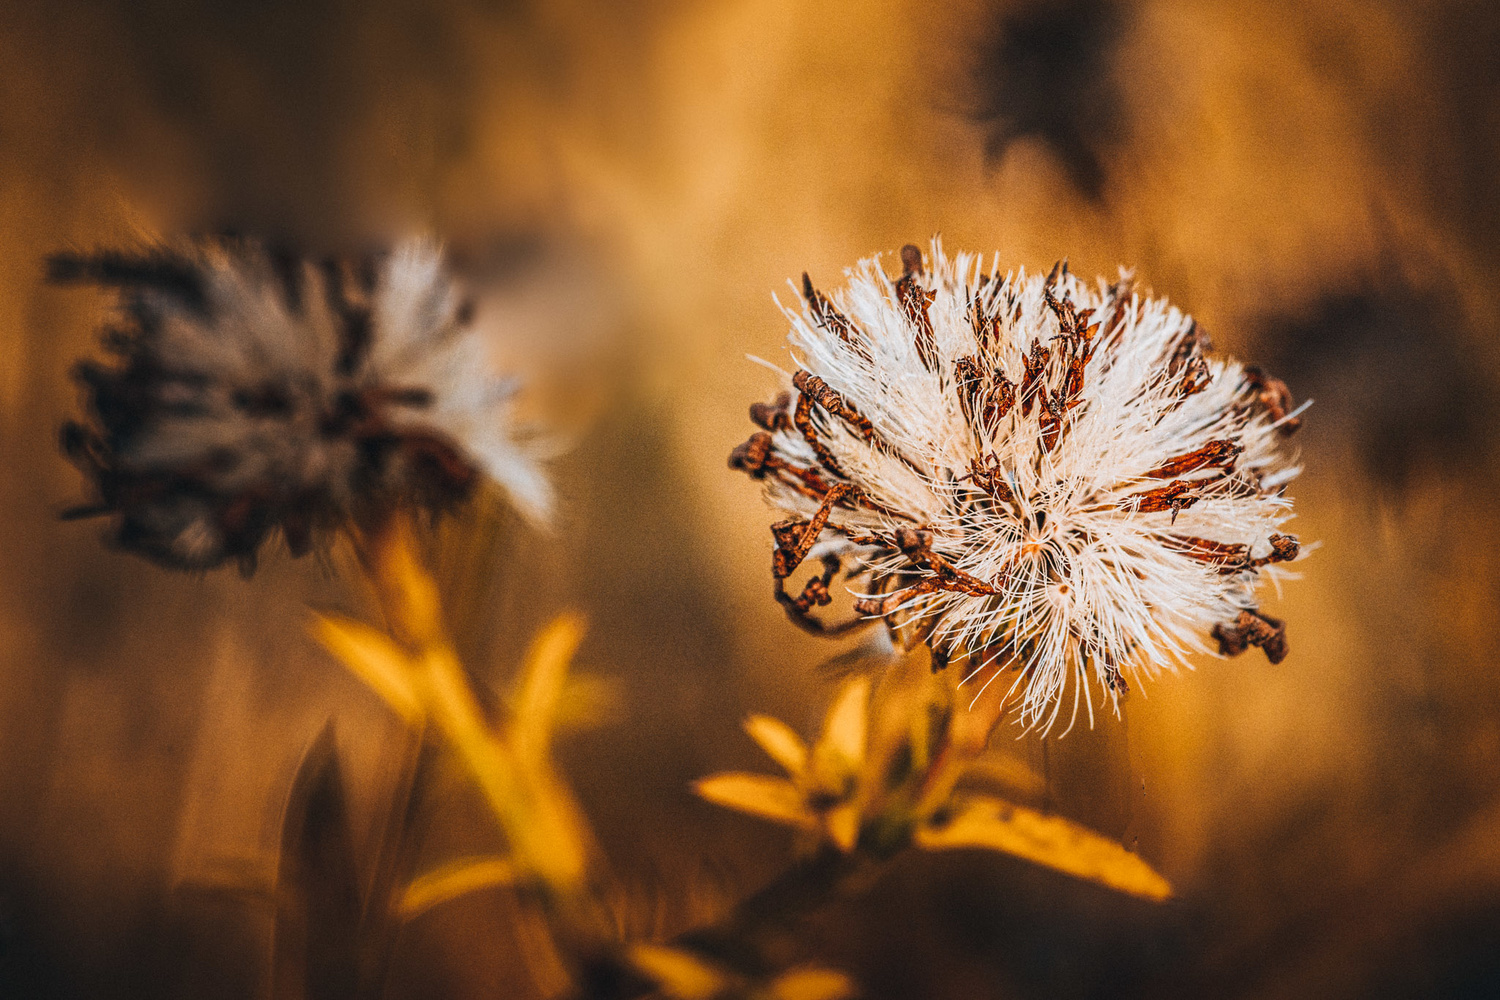 Autumn Aster by Jim Elve